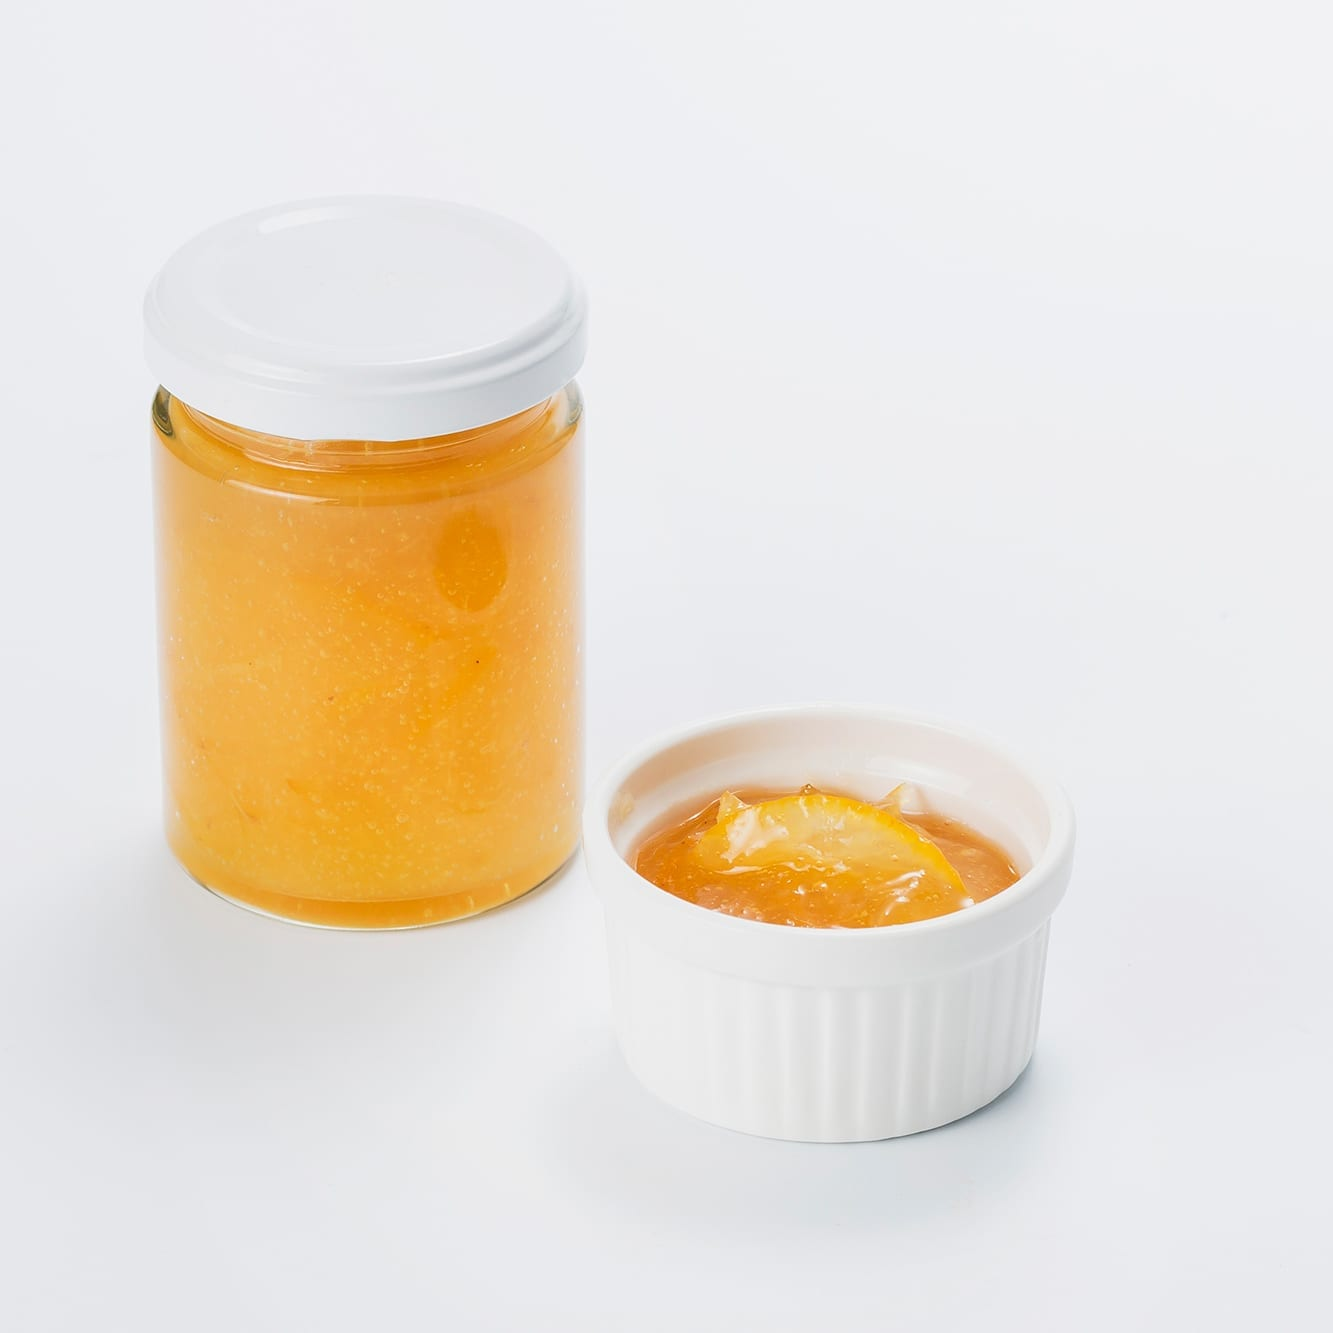 Naruto Orange Marmalade 120g